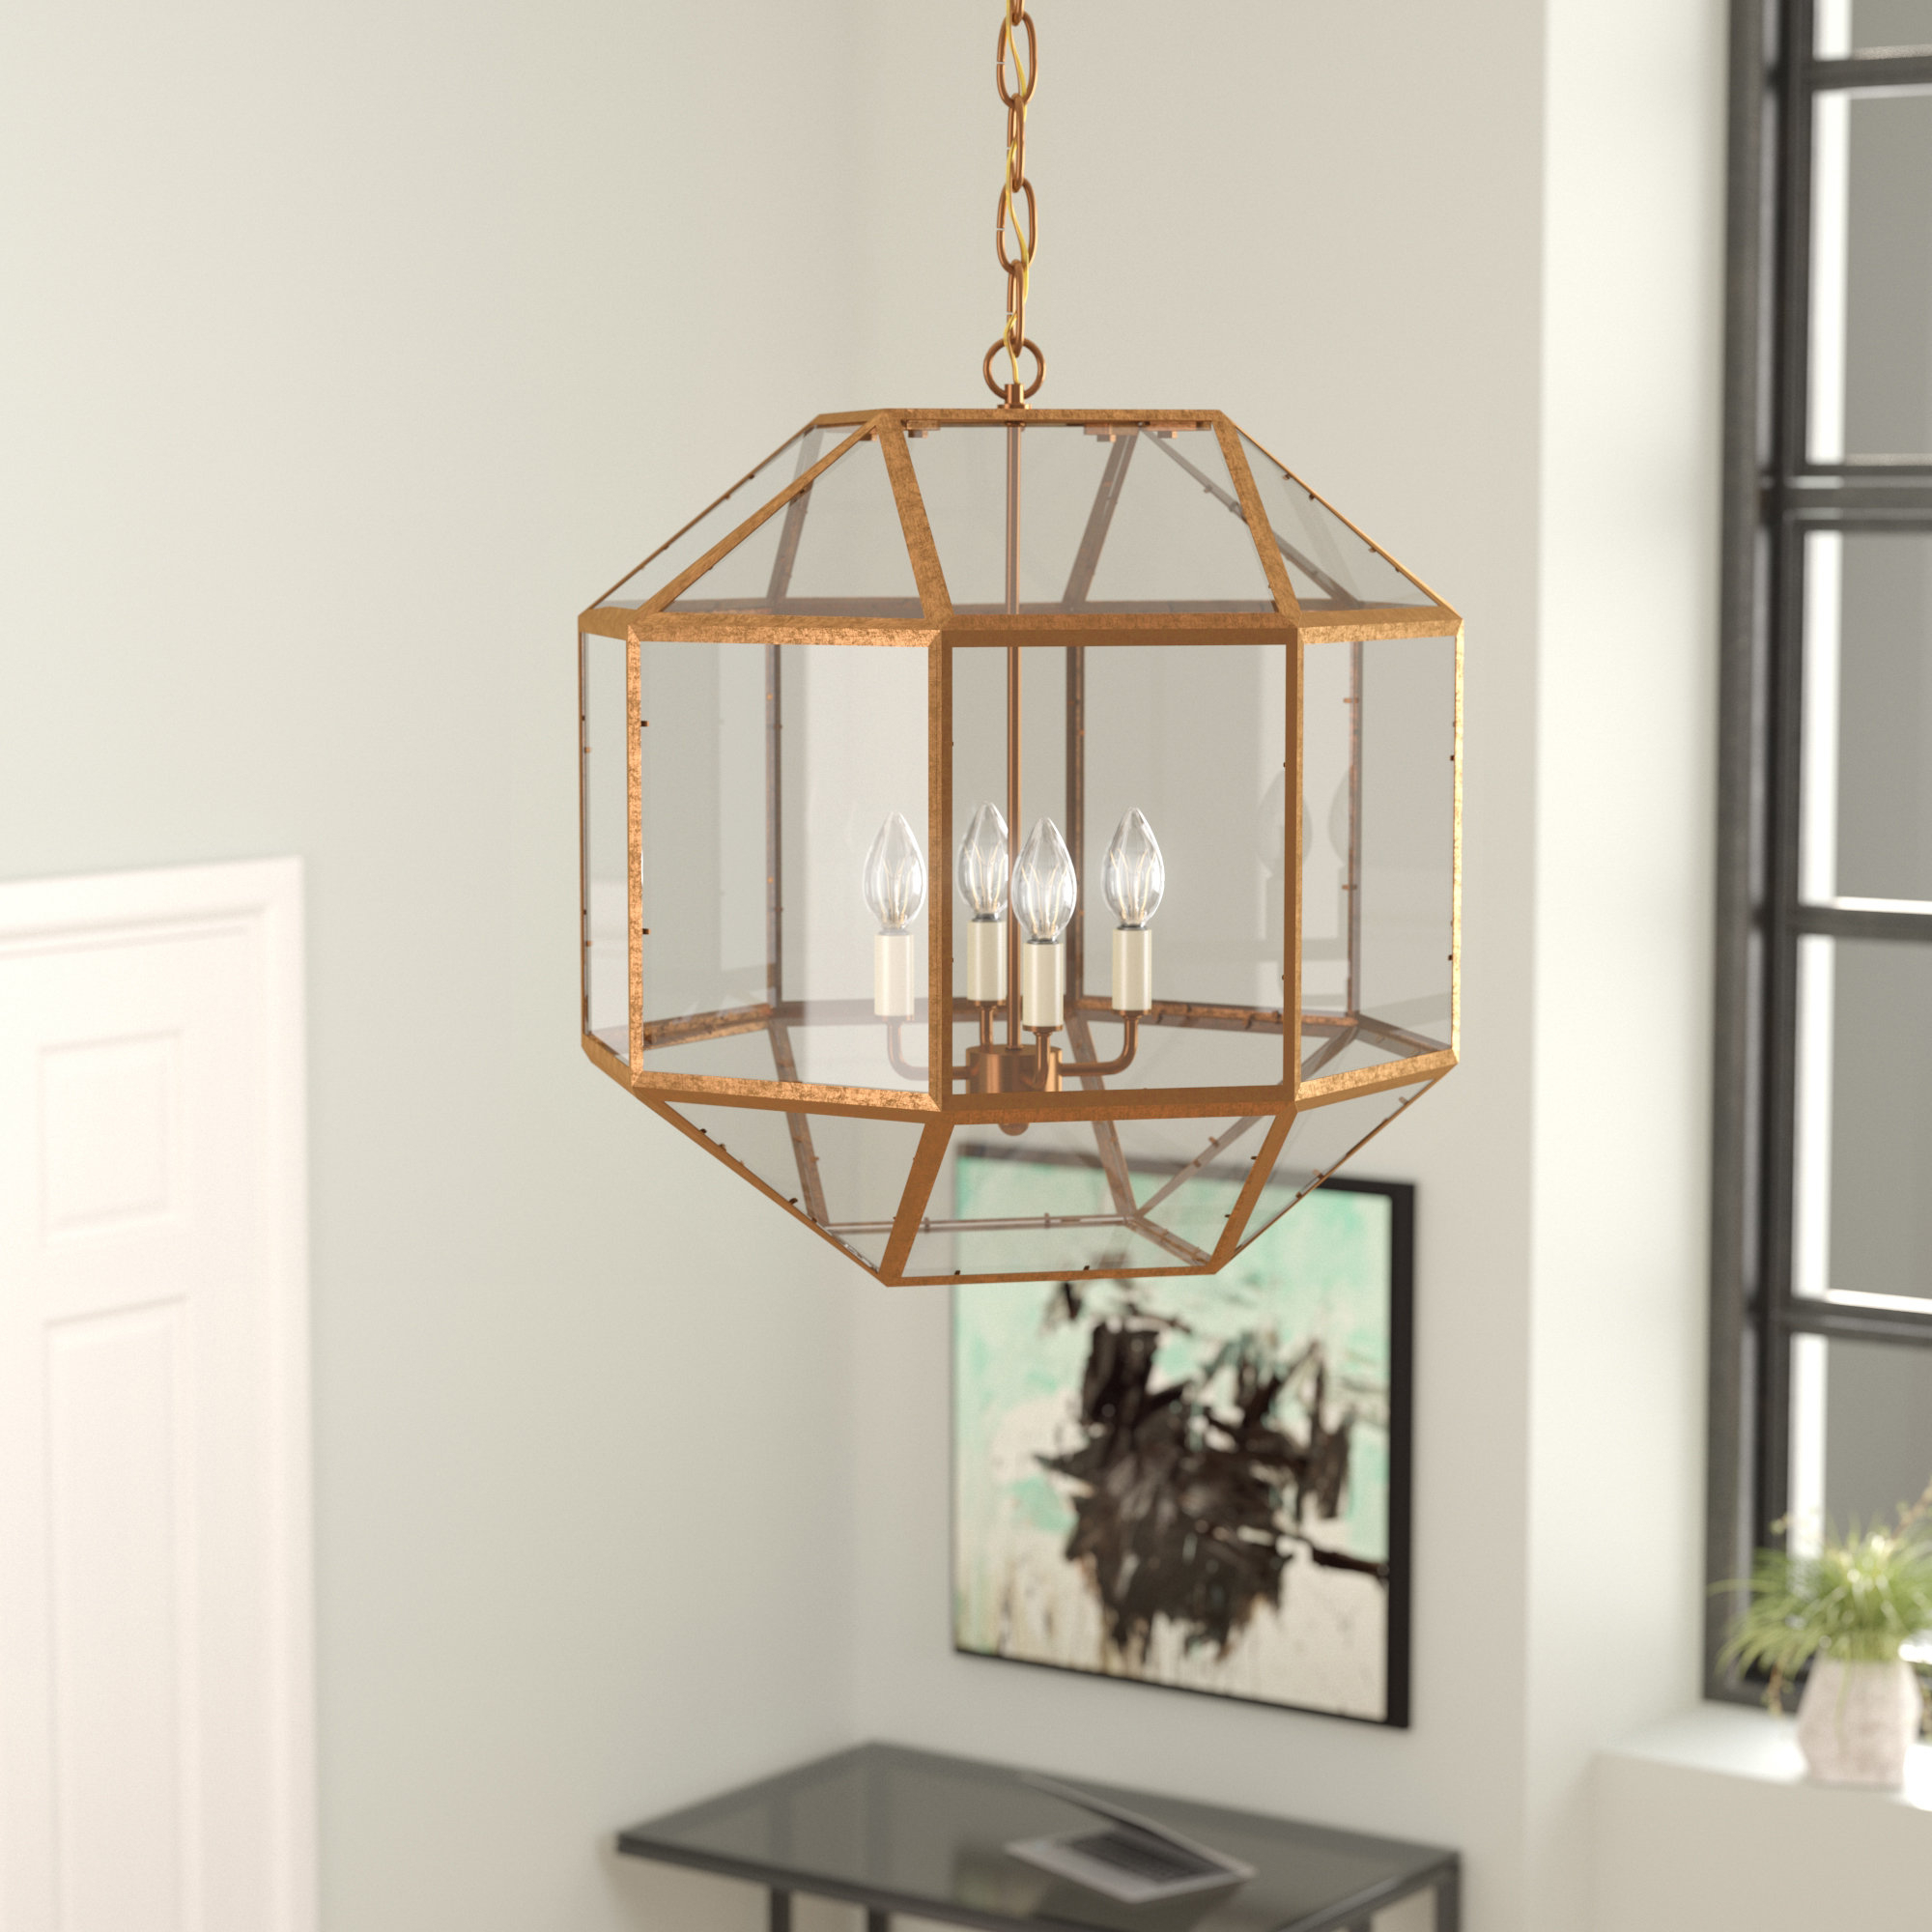 [%Geometric Chandeliers Sale – Up To 65% Off Until September Pertaining To Widely Used Reidar 4 Light Geometric Chandeliers|Reidar 4 Light Geometric Chandeliers Regarding Well Liked Geometric Chandeliers Sale – Up To 65% Off Until September|Well Known Reidar 4 Light Geometric Chandeliers Regarding Geometric Chandeliers Sale – Up To 65% Off Until September|Current Geometric Chandeliers Sale – Up To 65% Off Until September Within Reidar 4 Light Geometric Chandeliers%] (View 1 of 25)